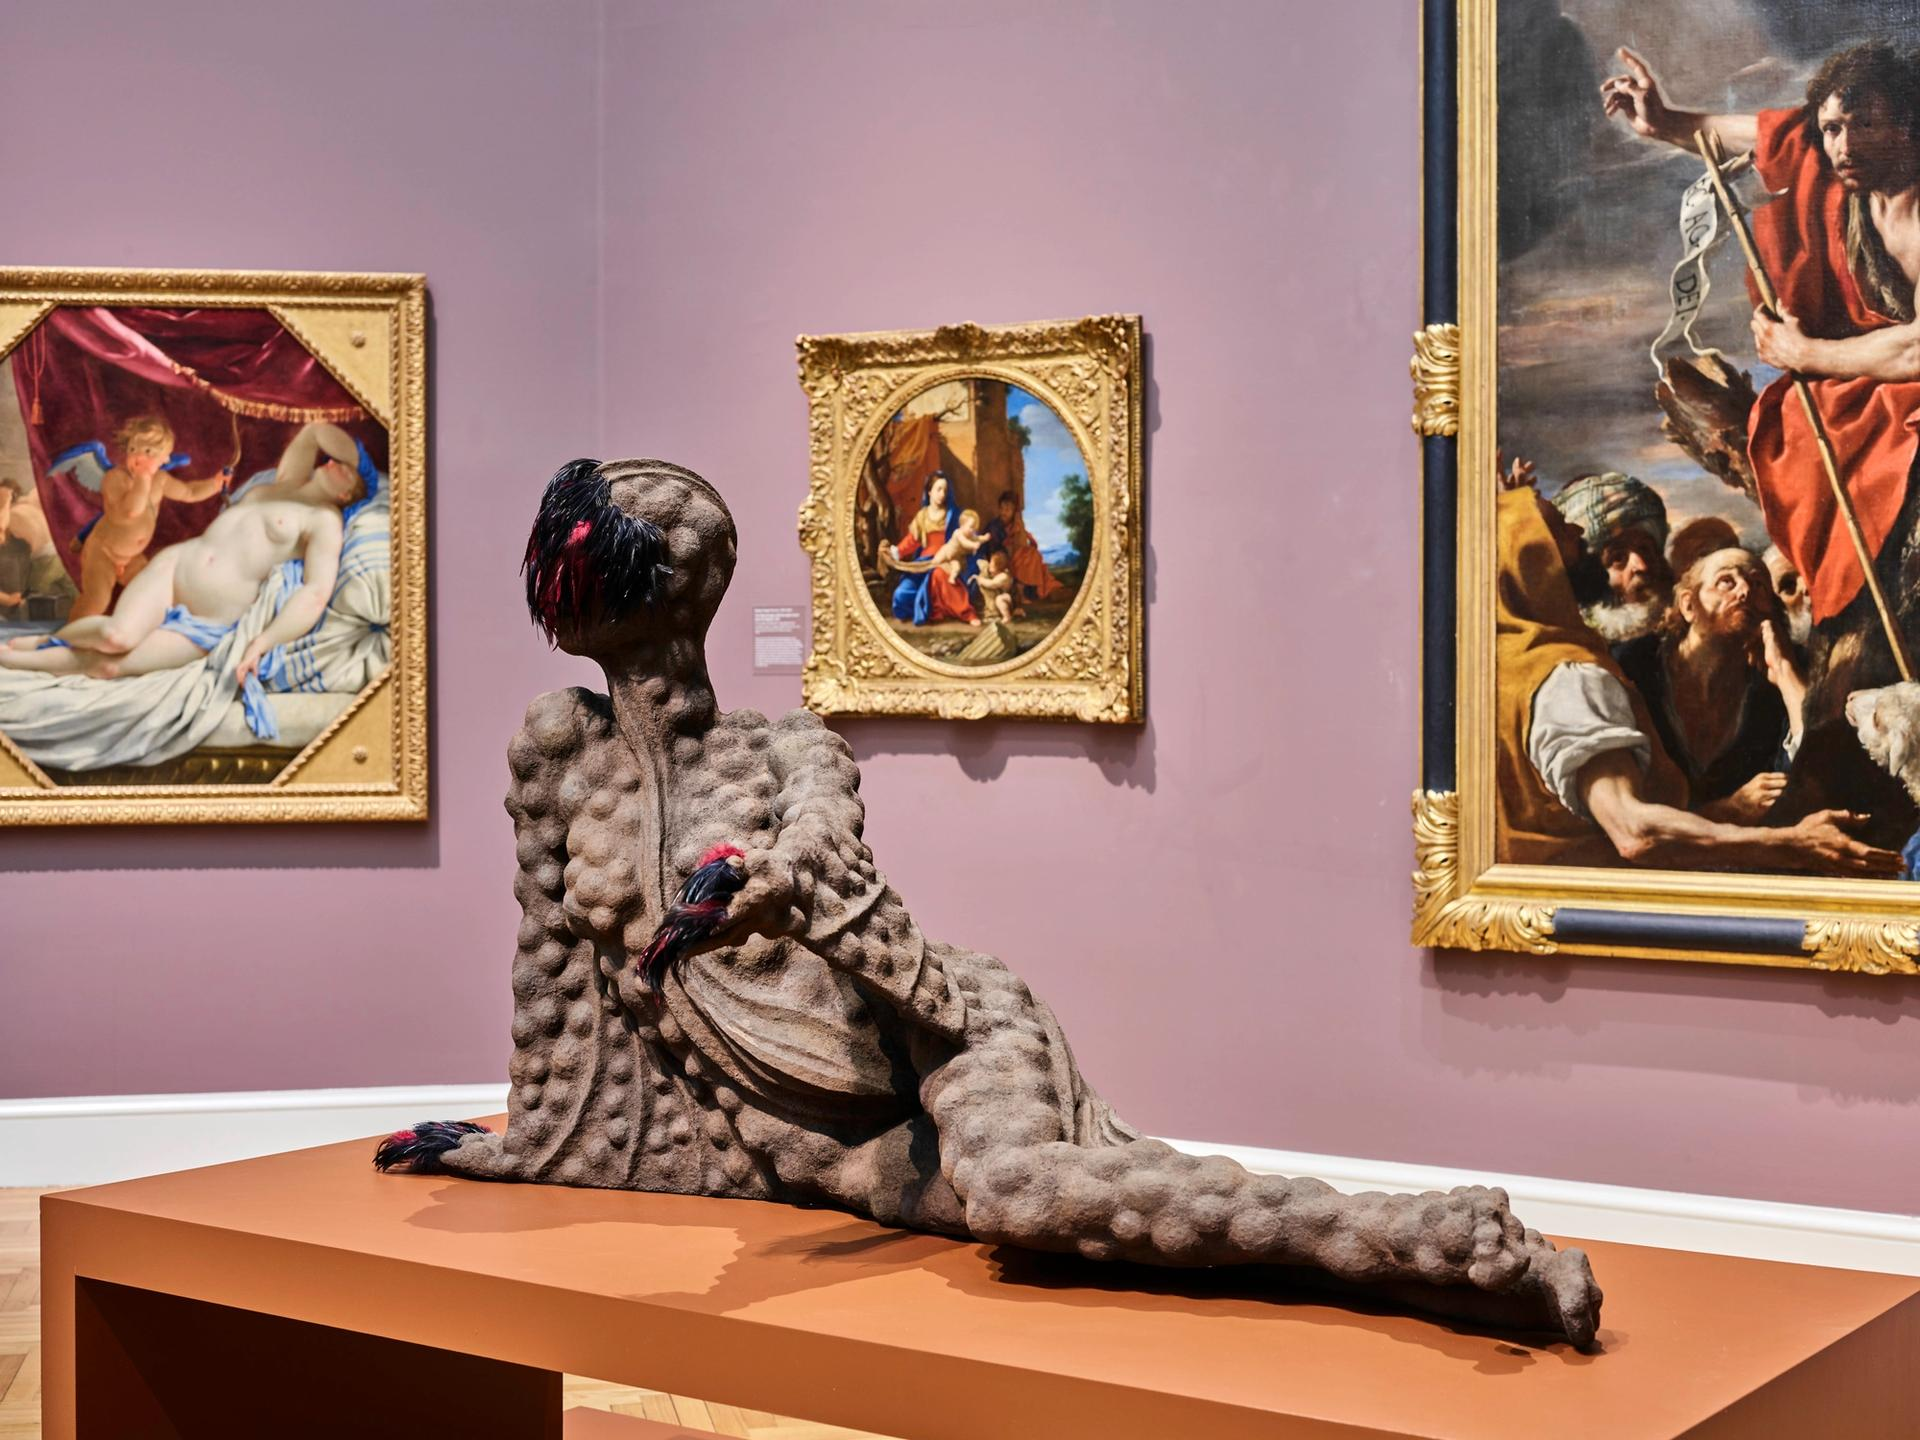 Wangechi Mutu's Outstretched (2019)installed in the European galleries of the Legion of Honor, San Francisco Photograph by Randy Dodson, courtesy of the Fine Arts Museums of San Francisco. © Wangechi Mutu. All rights reserved. Courtesy the Artist and Gladstone Gallery, New York and Brussels